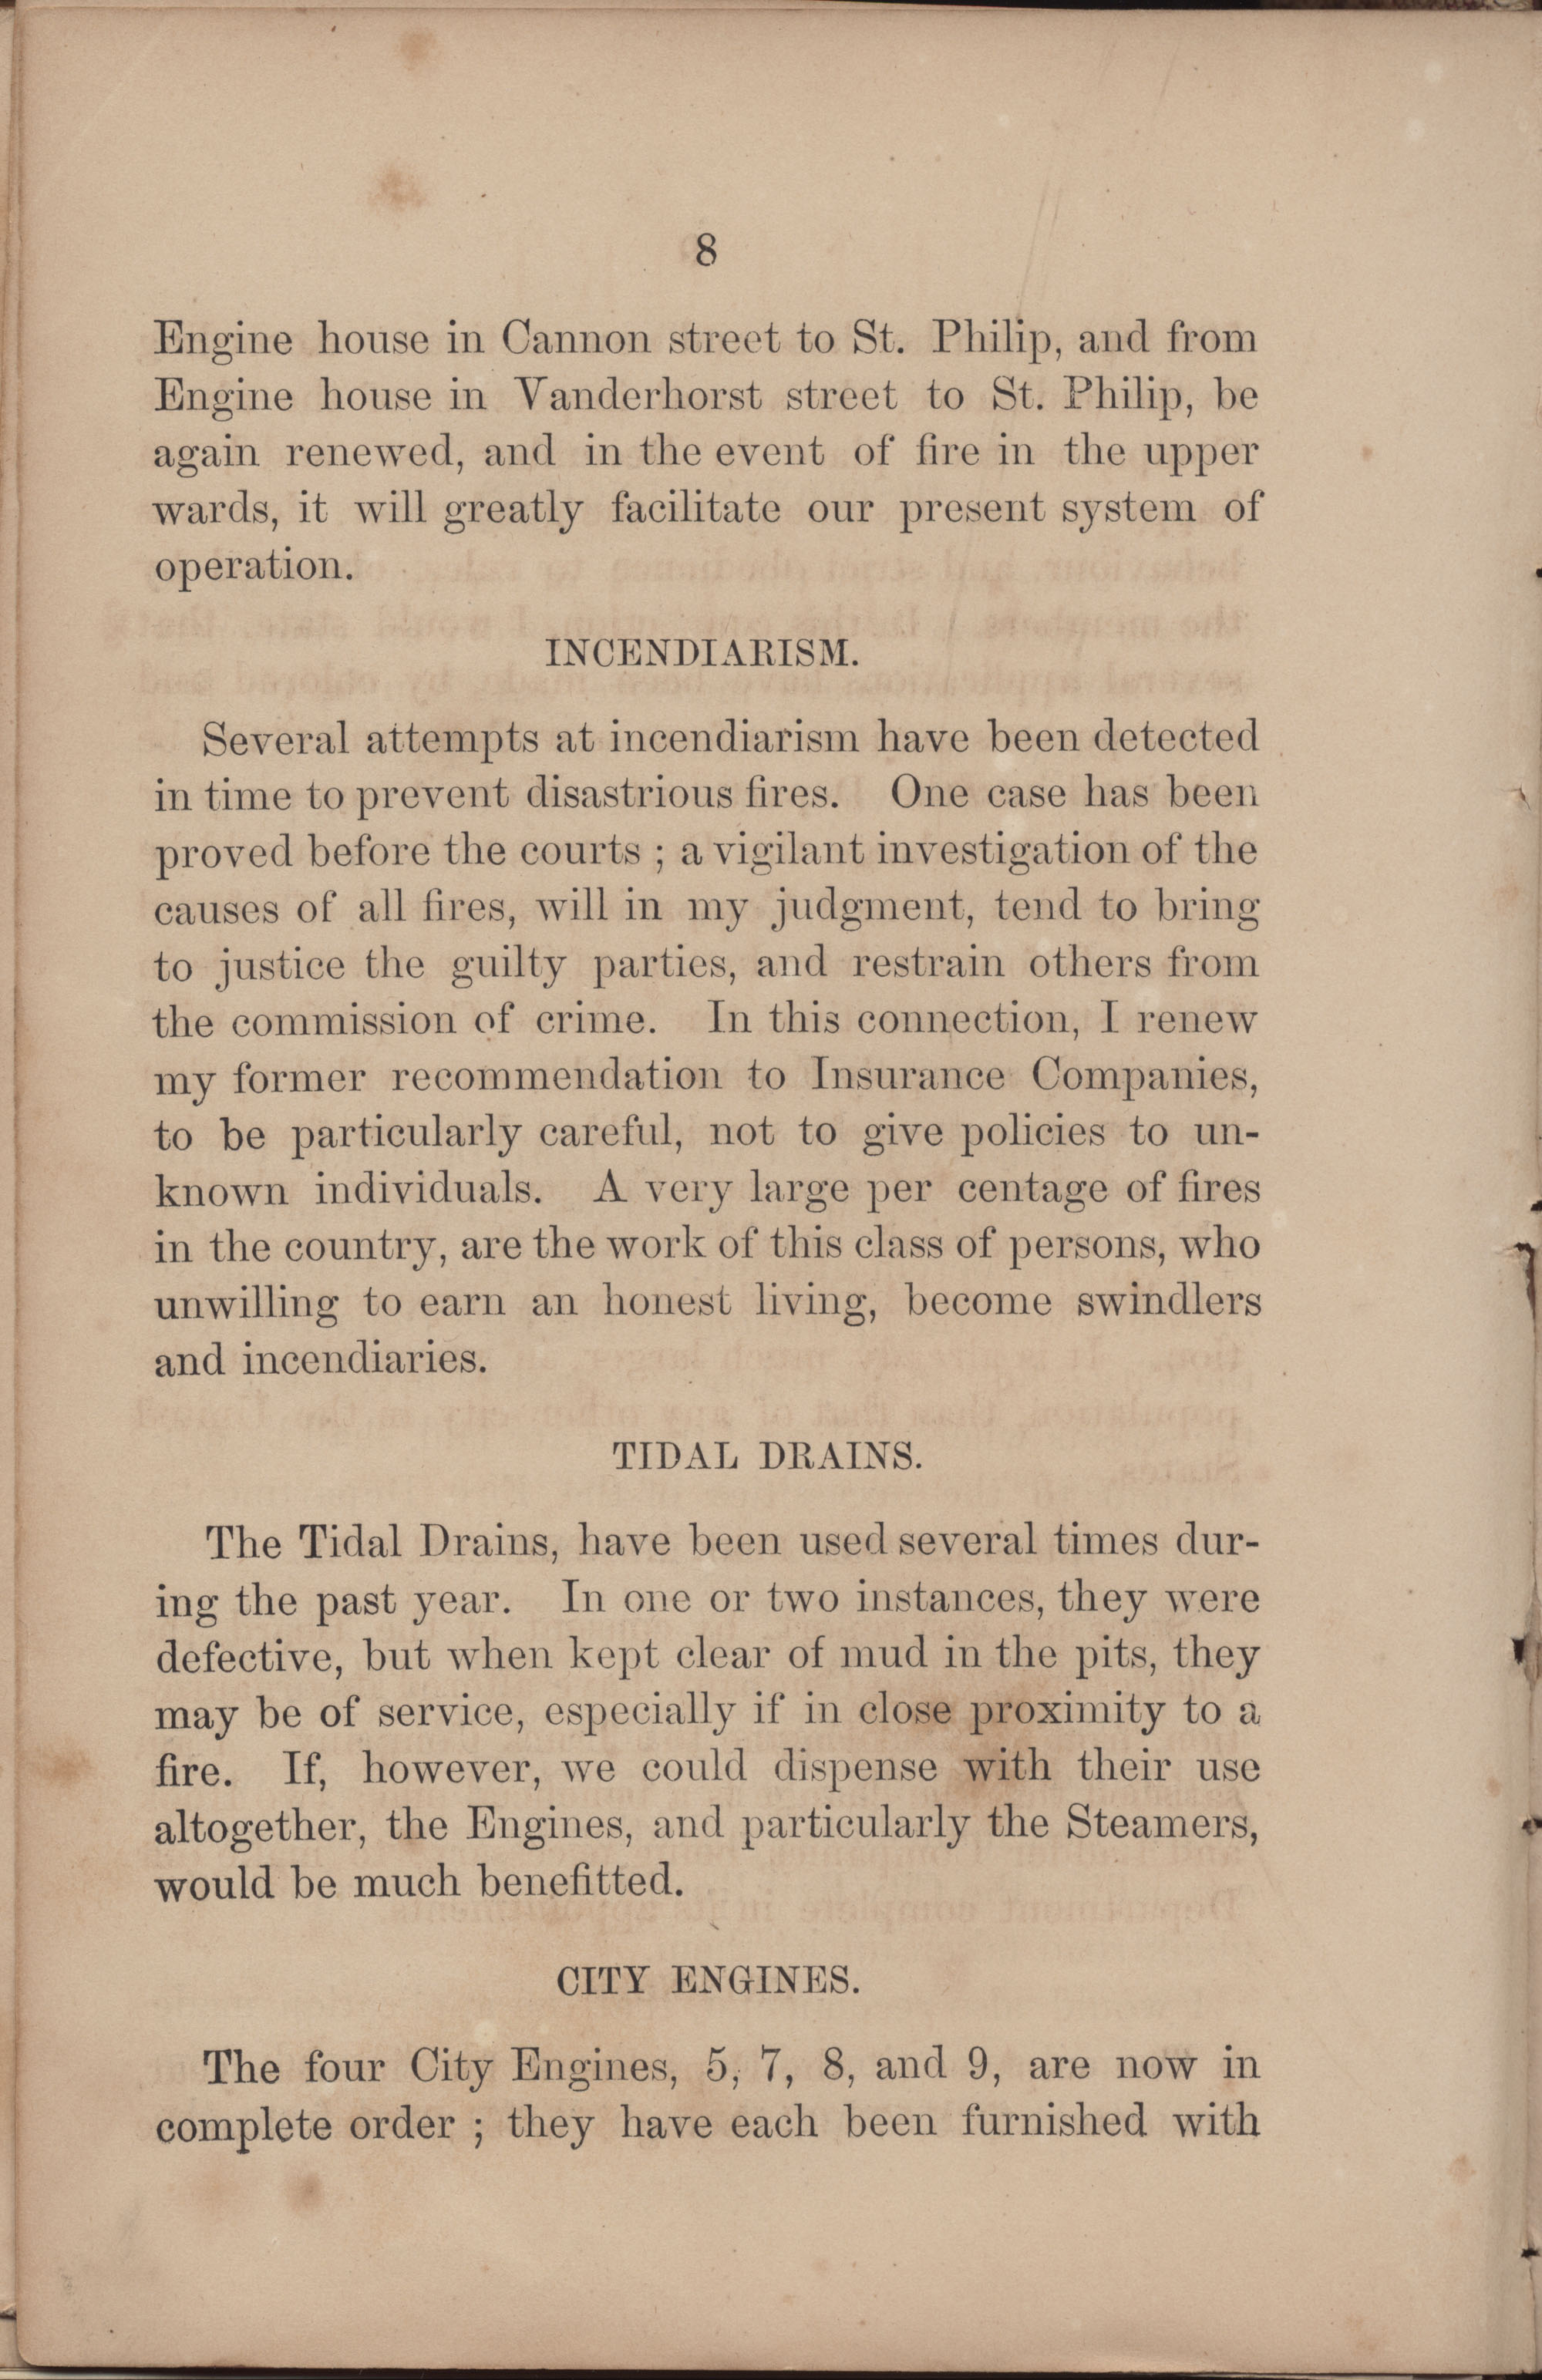 Annual Report of the Chief of the Fire Department of the City of Charleston, page 186